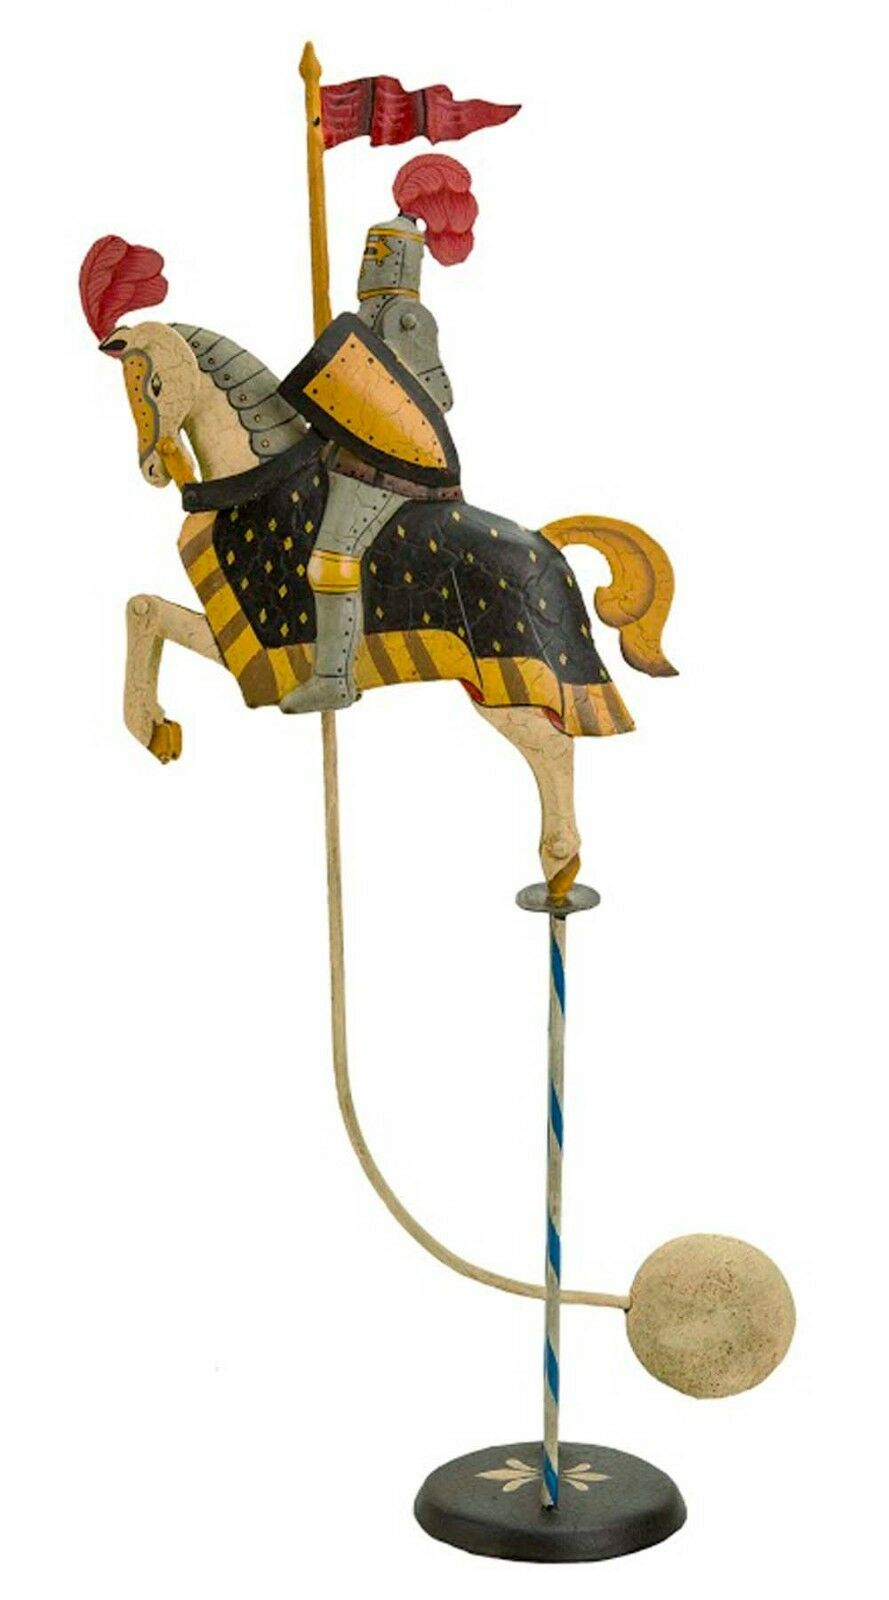 Antiqued Medieval Knight Sky Hook 14.2 Titter Totter Tin Metal Balance Toy